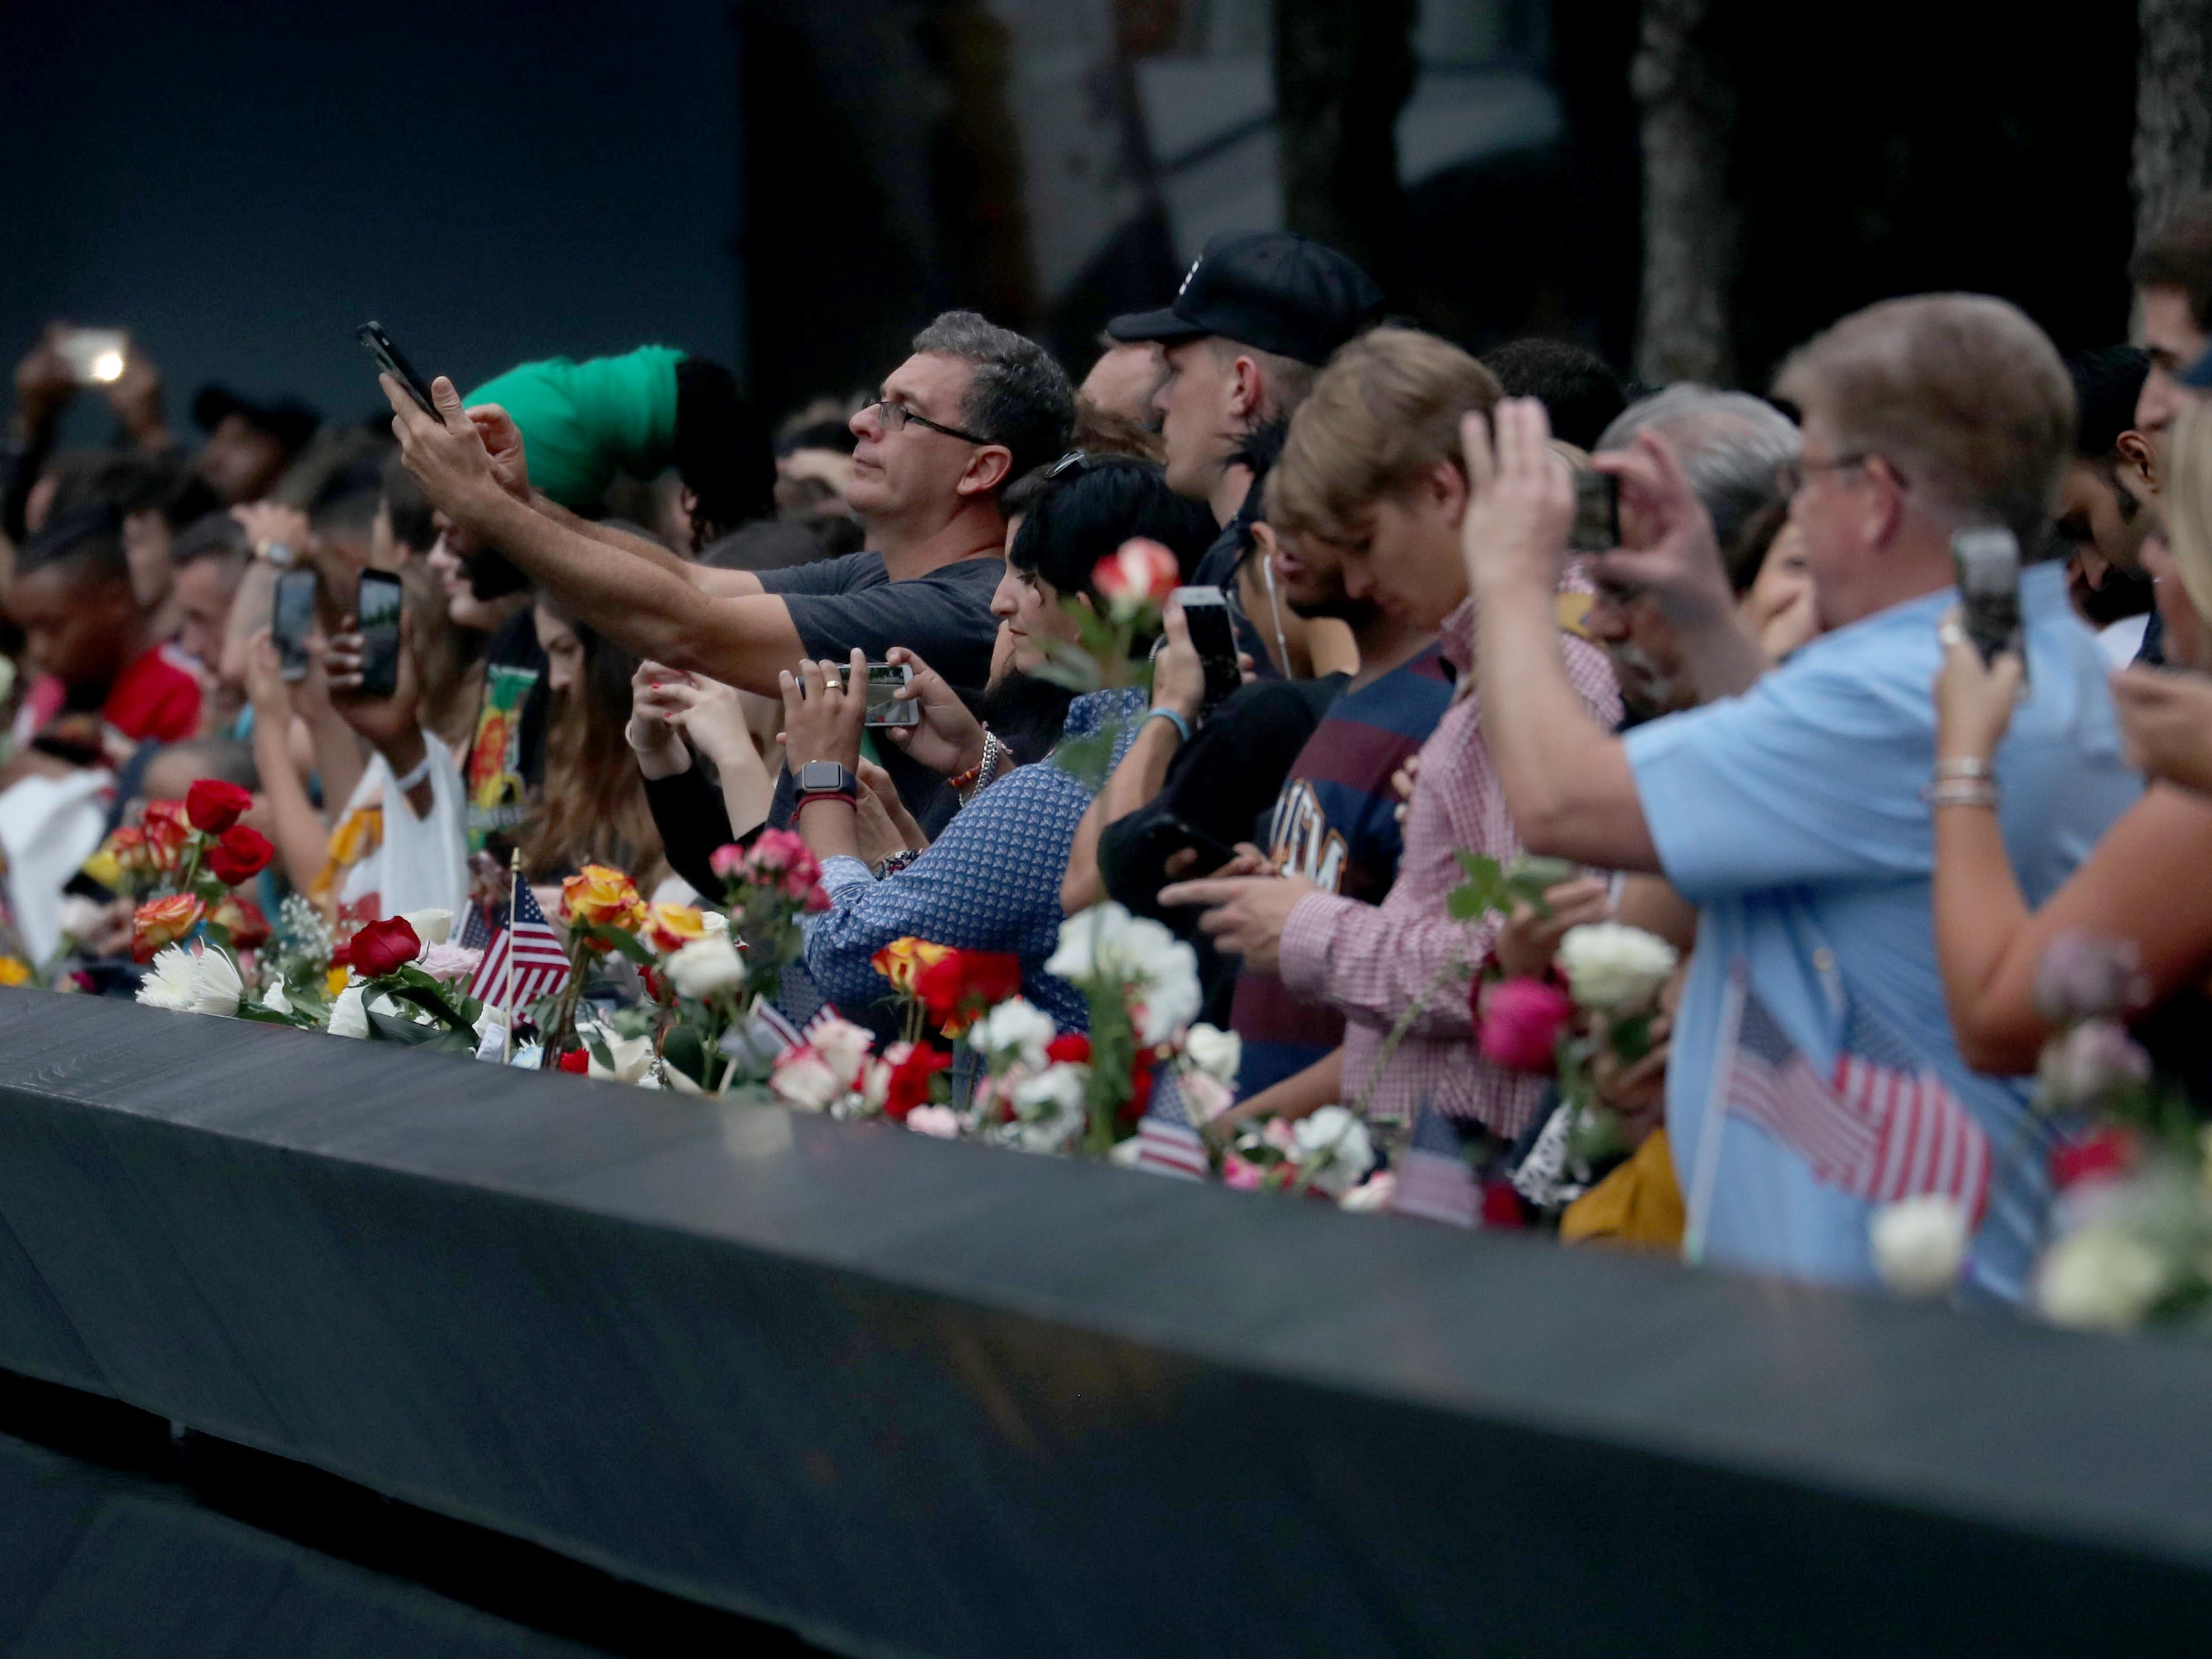 Thousands spend time at the The National September 11 Memorial in New York on Sept. 11, 2018.